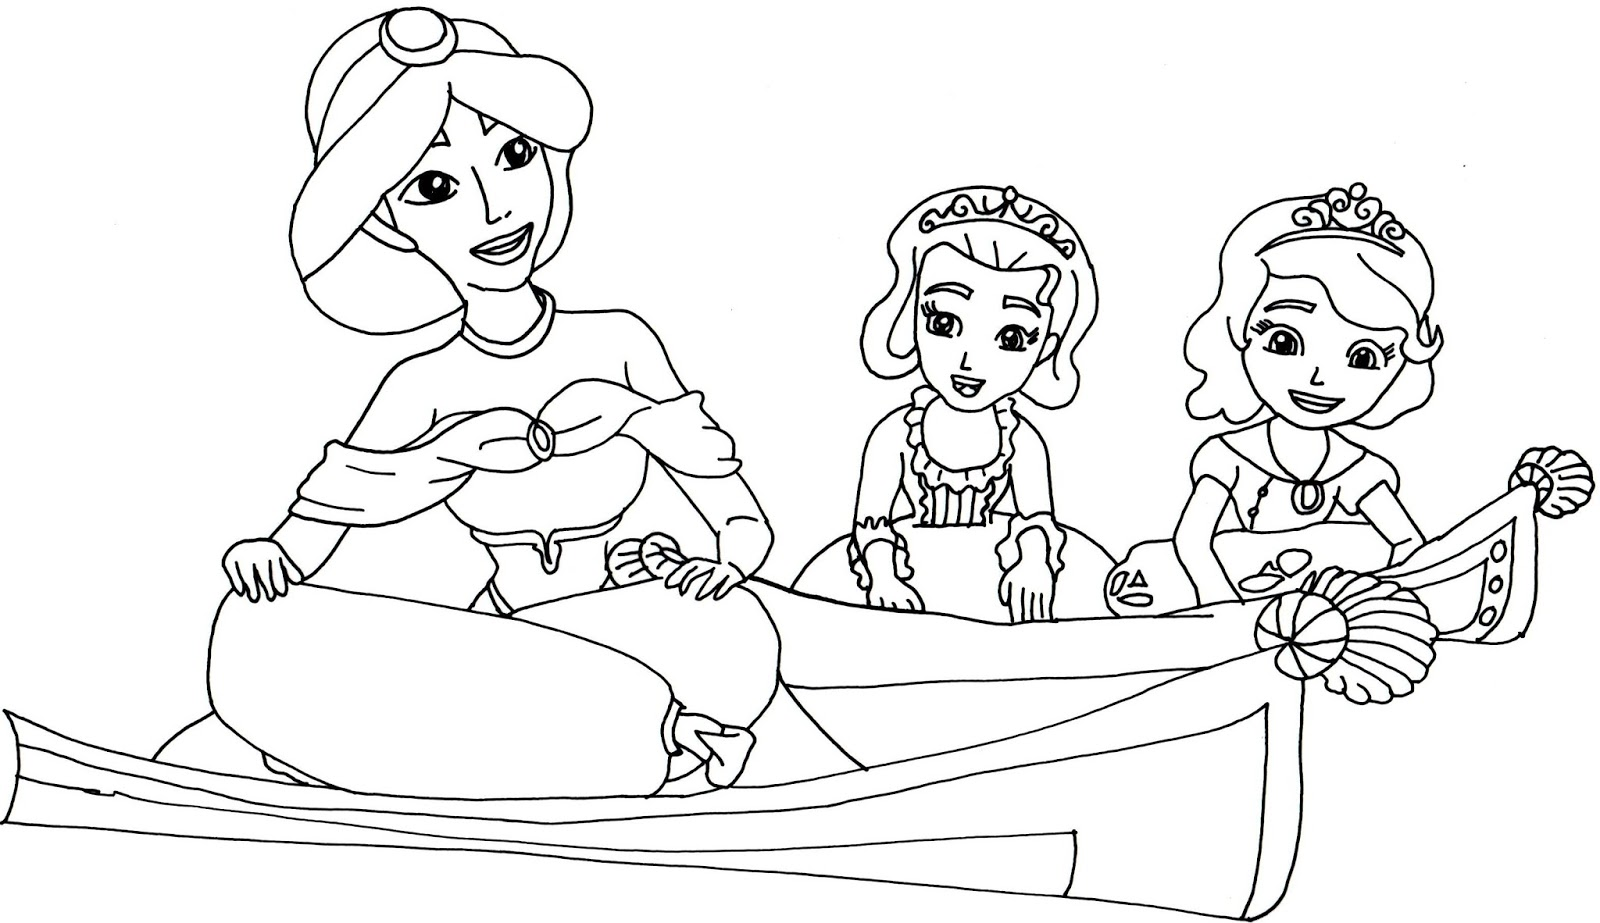 Sofia The First Coloring Pages Two To Tangu Sofia the First